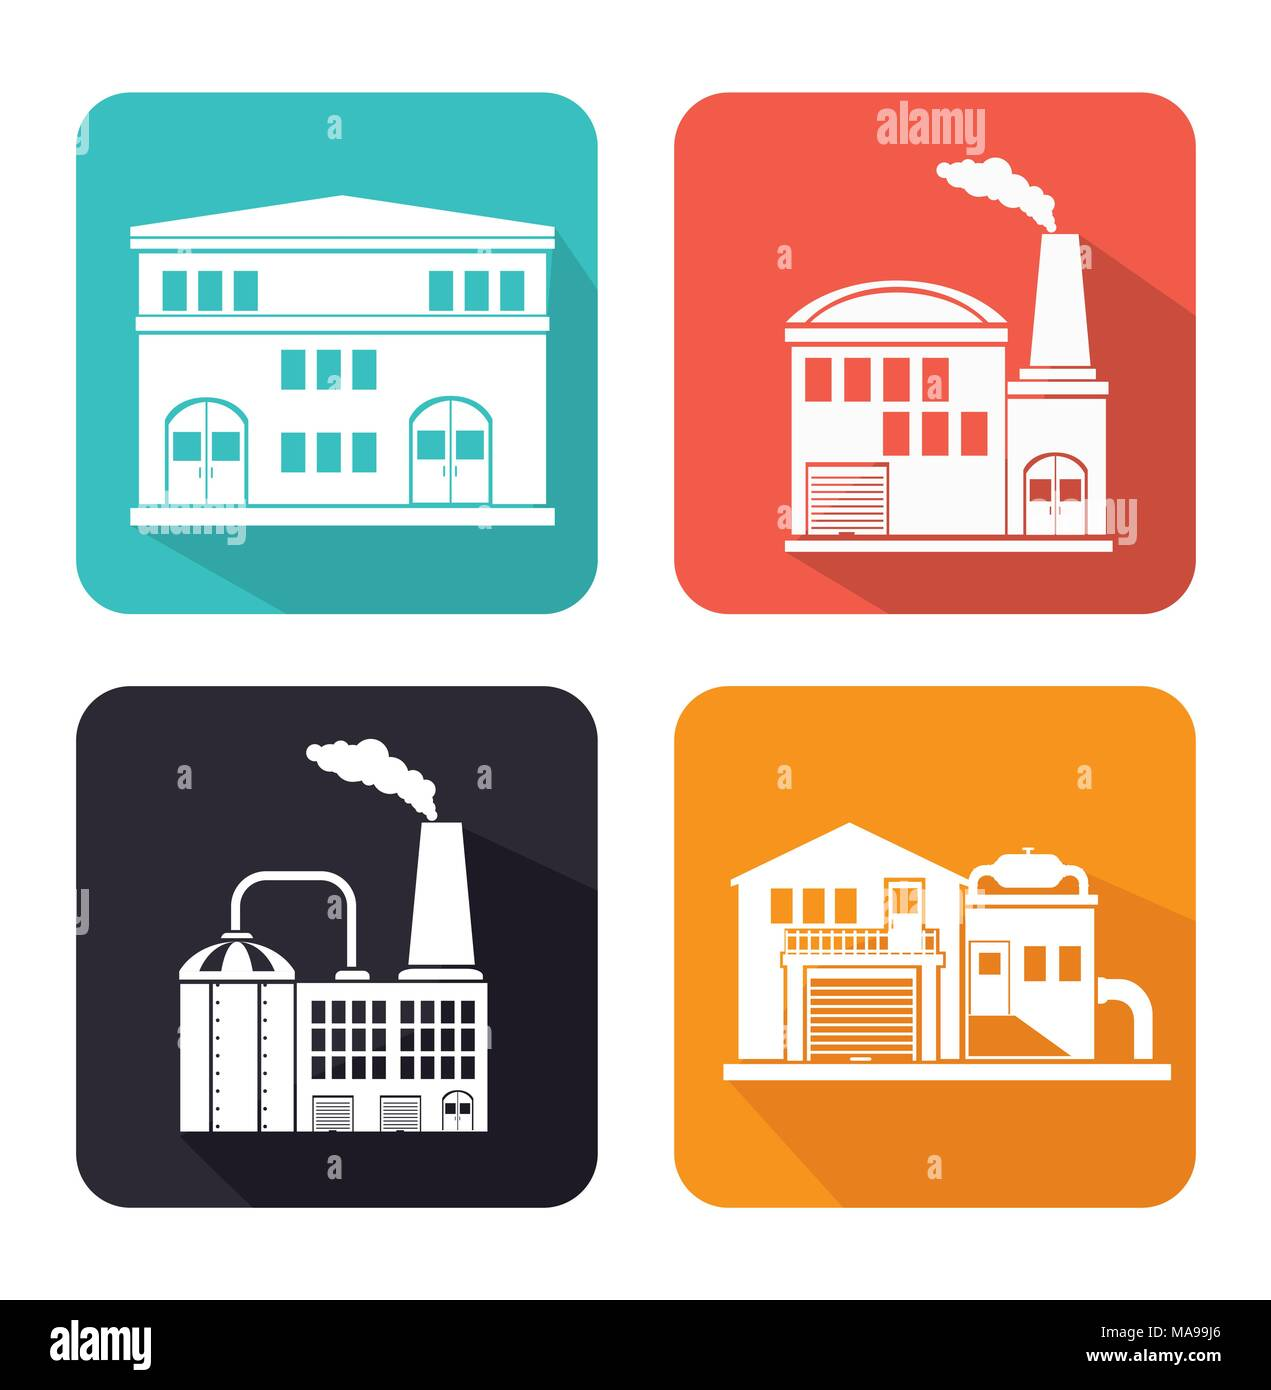 Factories and industries graphic design, vector illustration eps10 - Stock Image